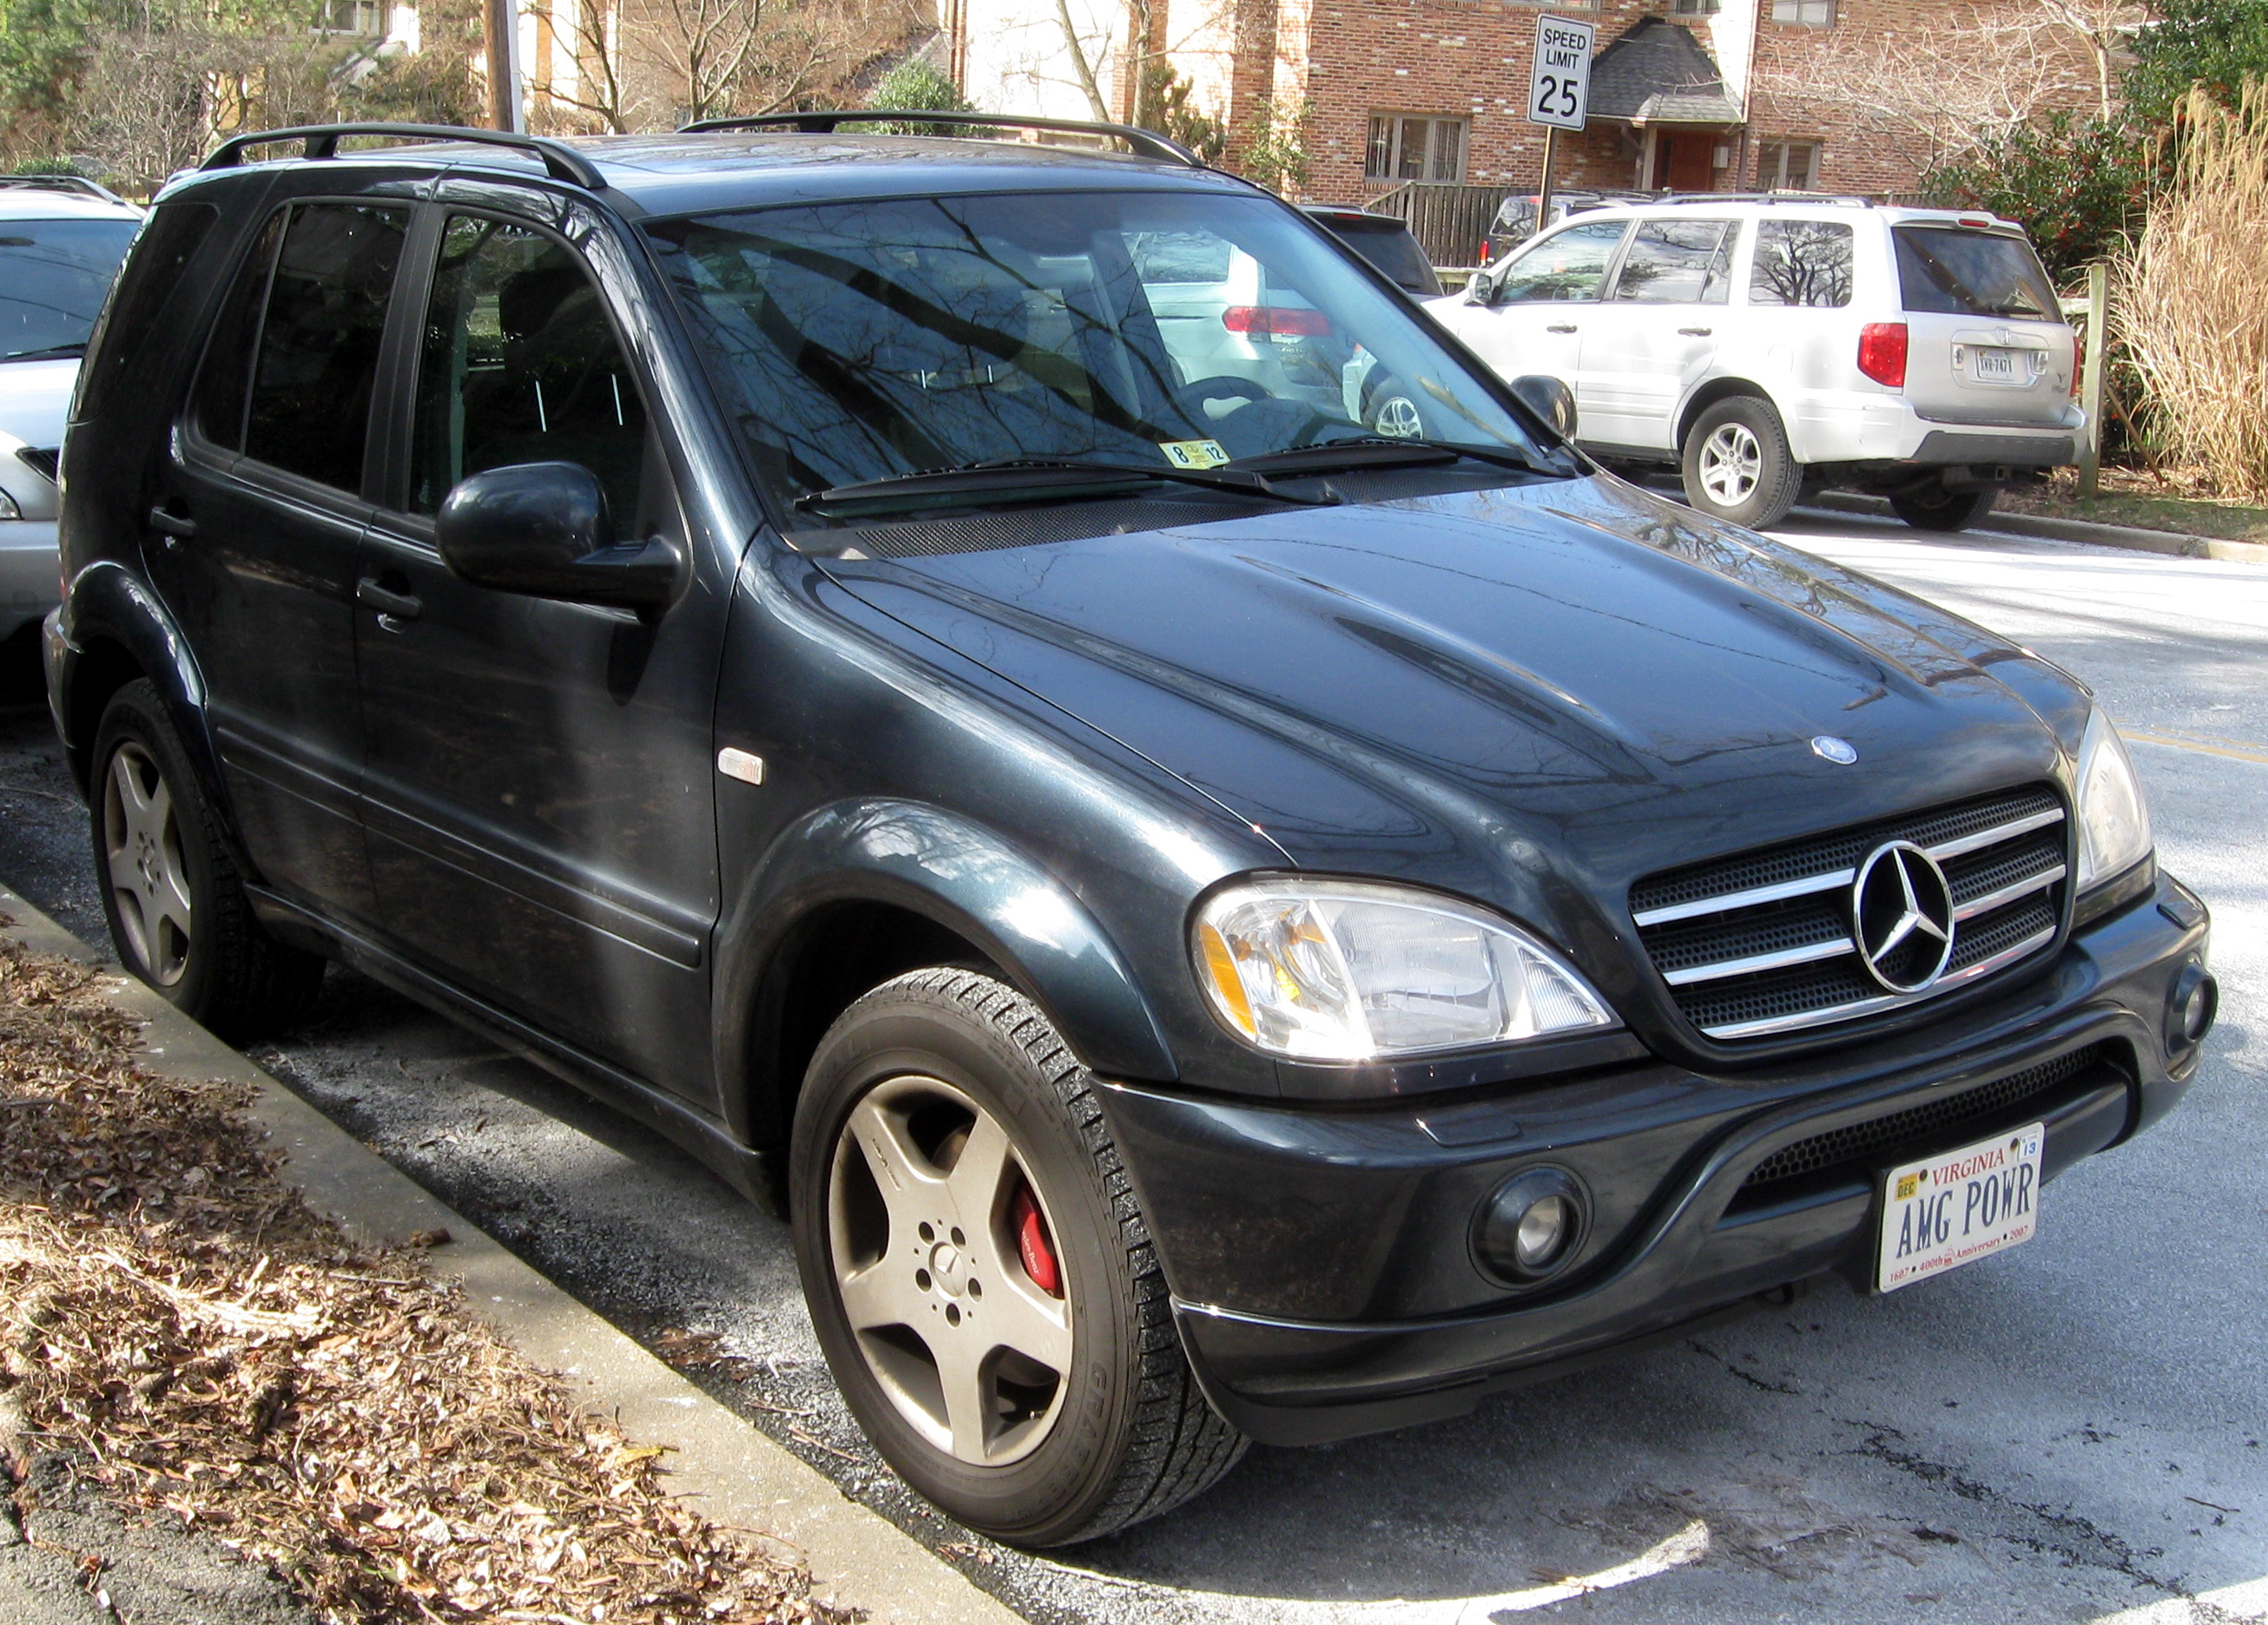 file:mercedes-benz ml55 amg -- 02-14-2012 - wikimedia commons